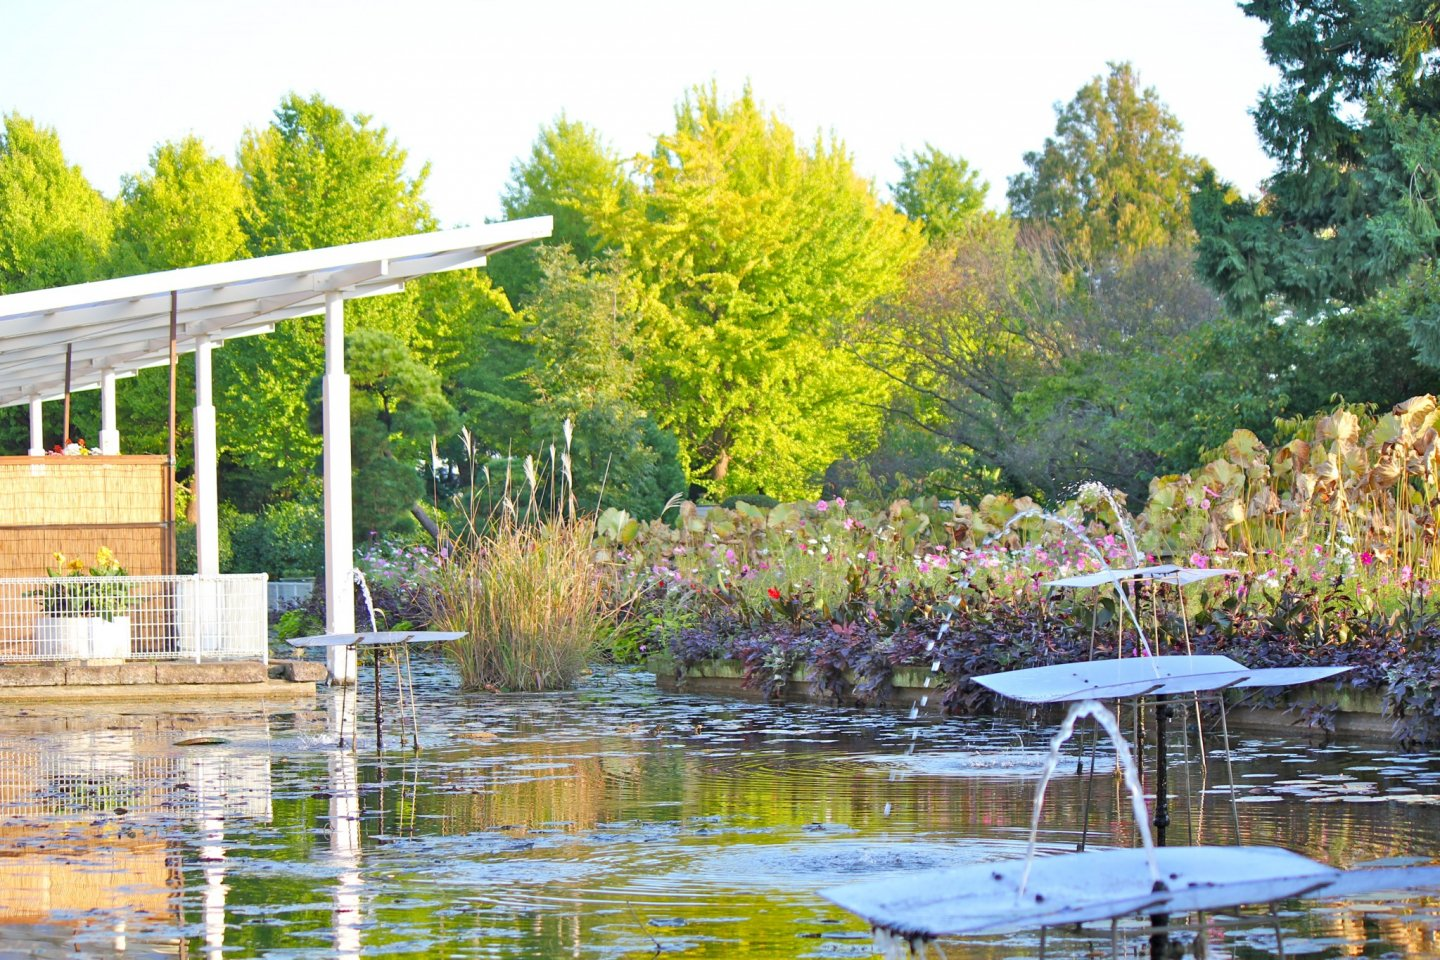 The tranquil lily pond is just steps away from the main entrance